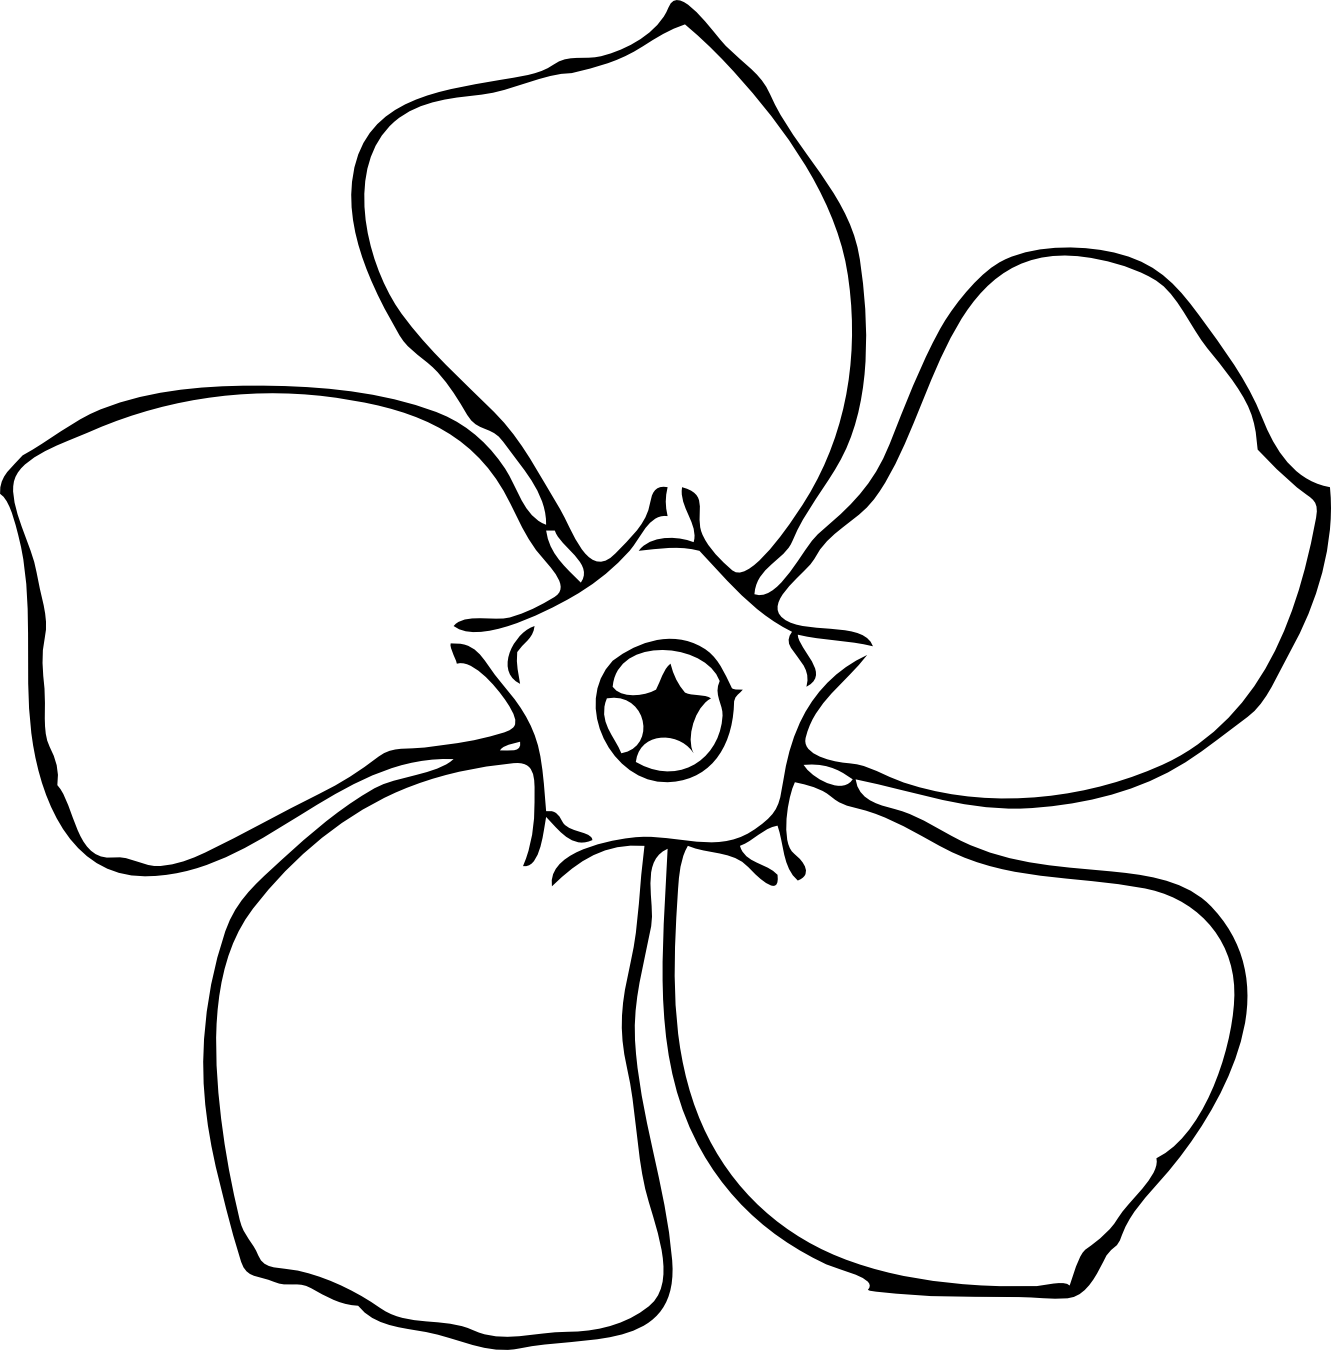 Simple Flower Black And White Clipart